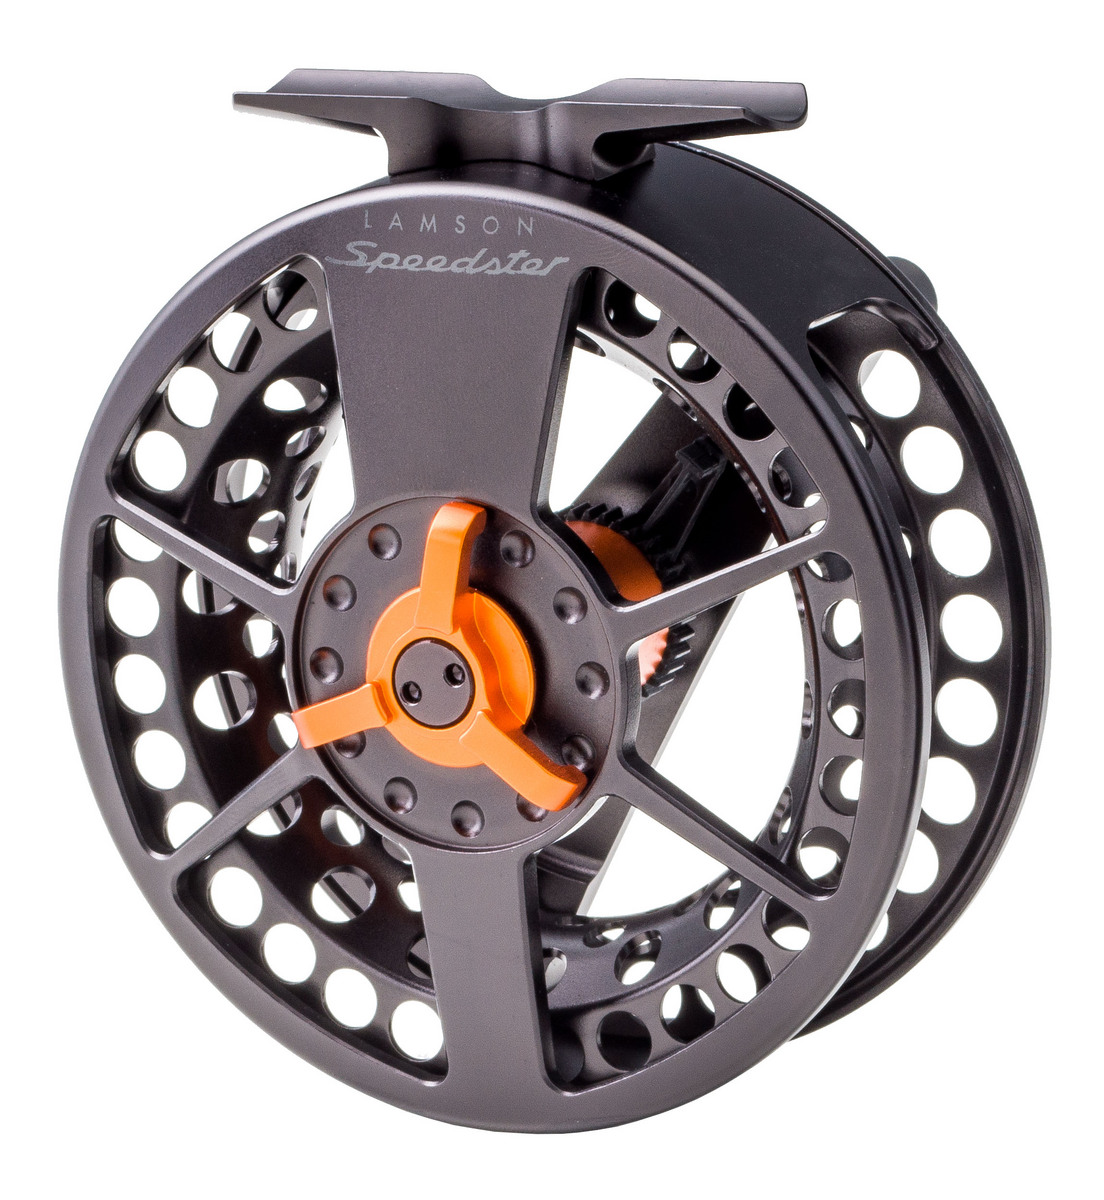 Lamson Speedster Black Fly Reel